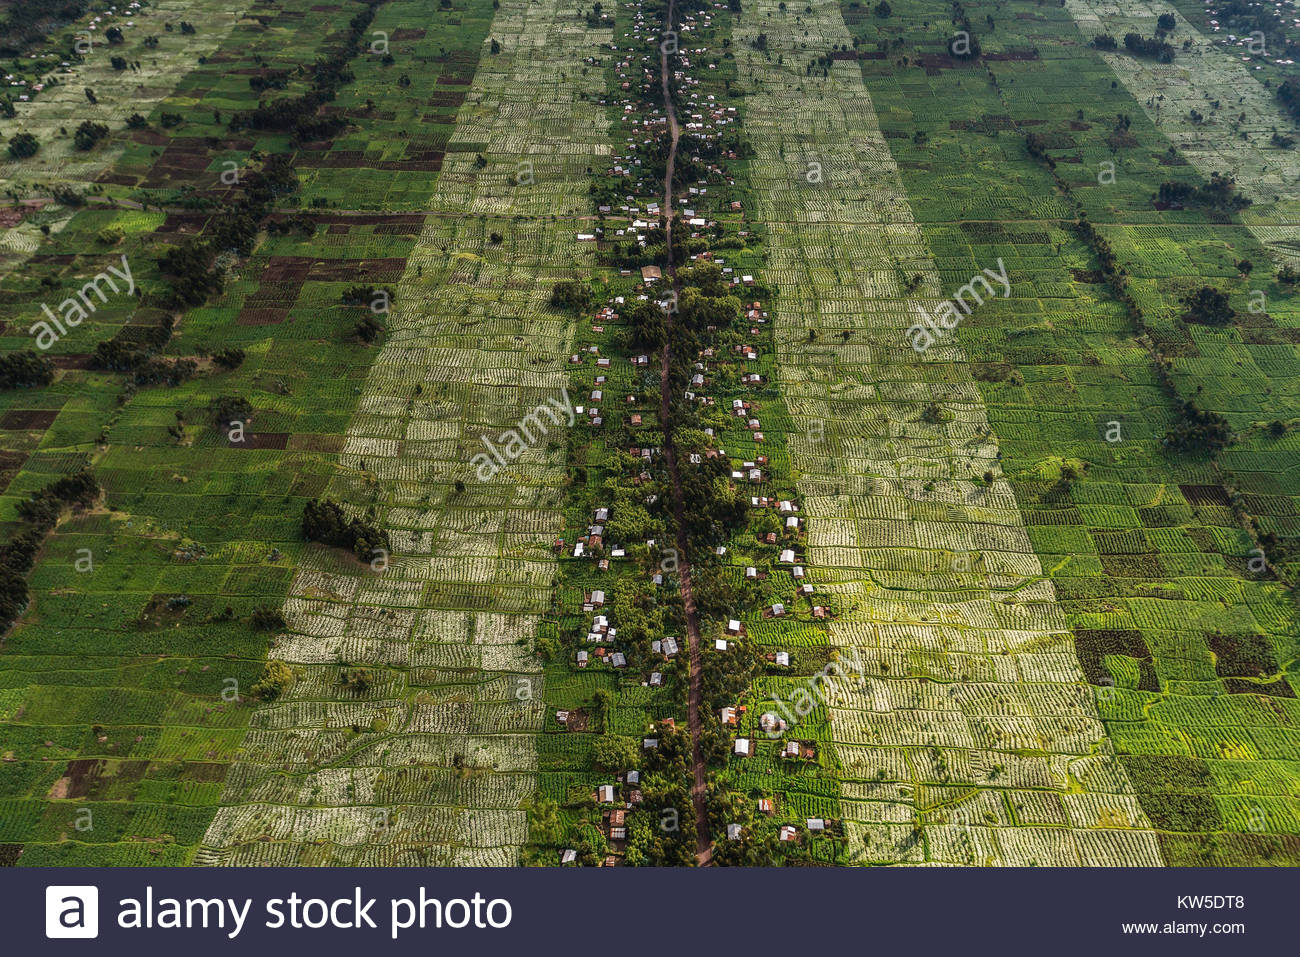 Aerial view of the farmlands in northern Rwanda. - Stock Image